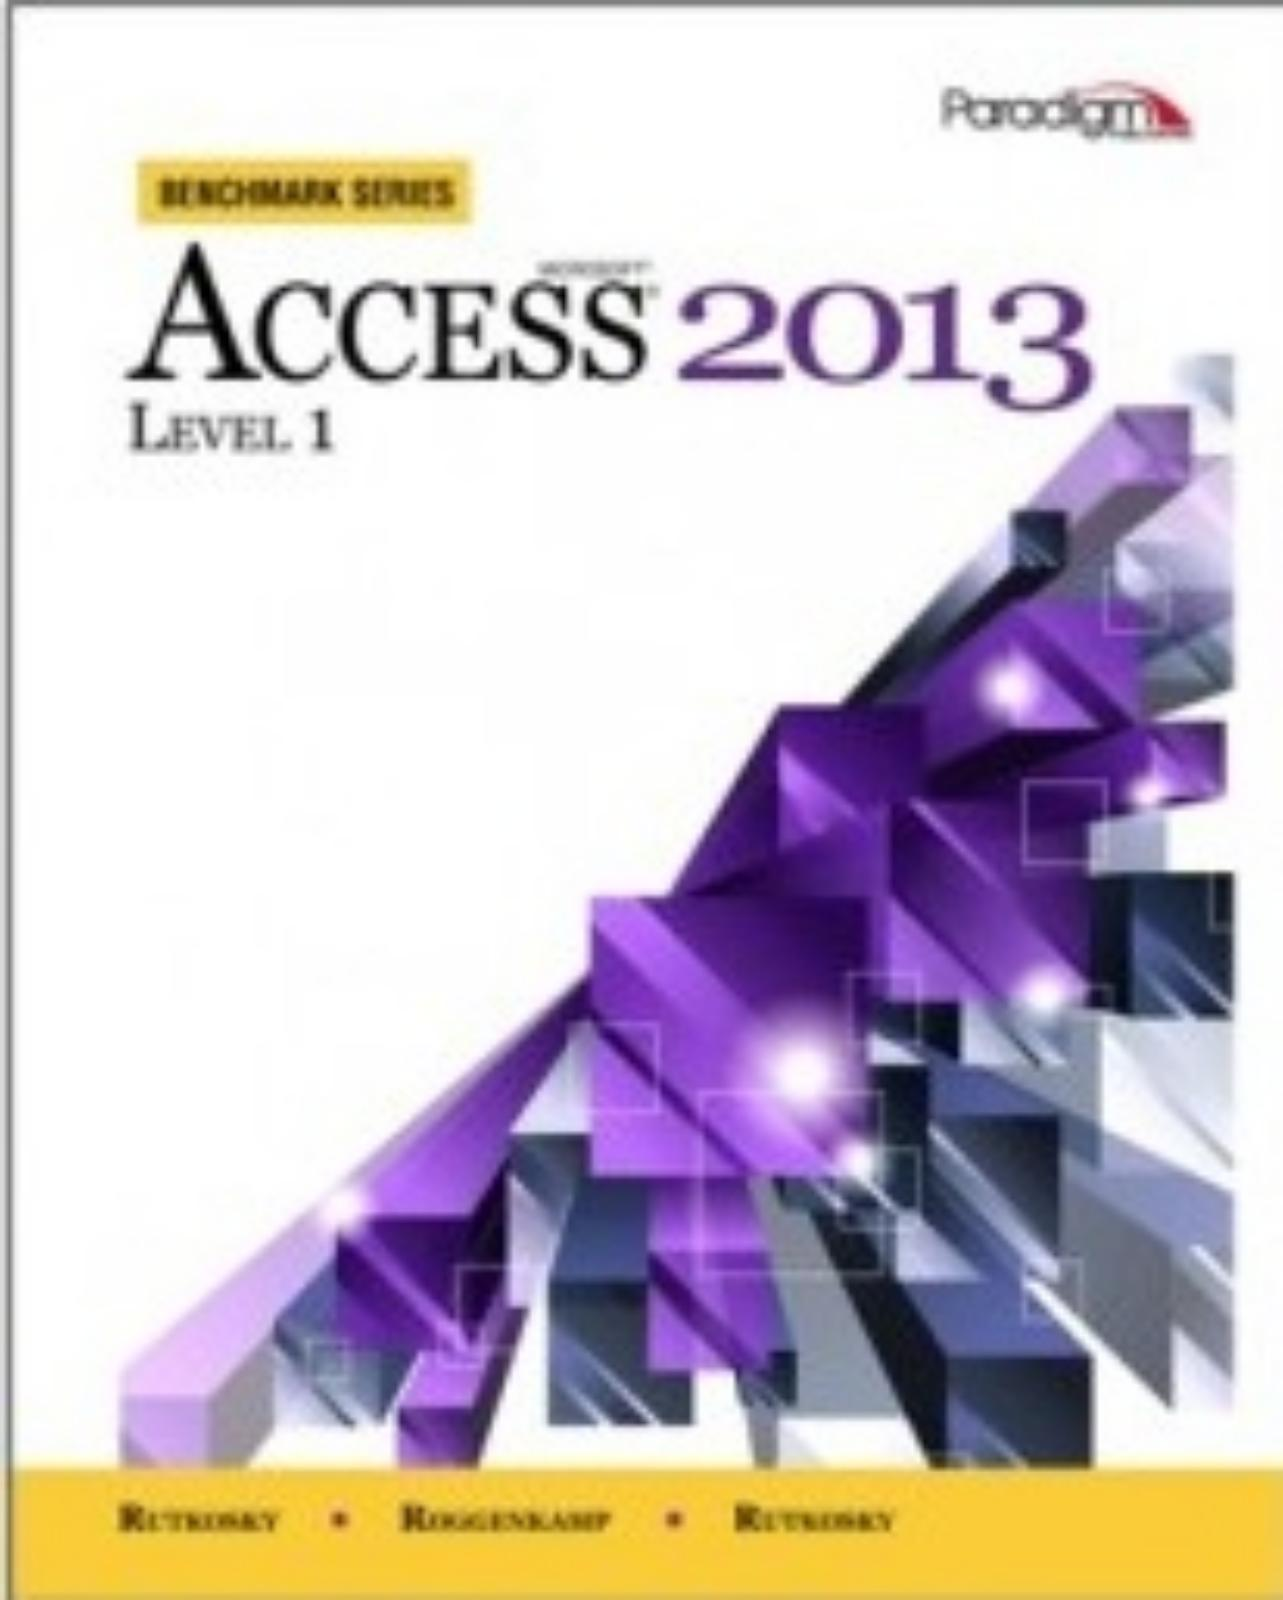 9780763853938 Ms ACcess 2013 Level 1 - Benchmark Series